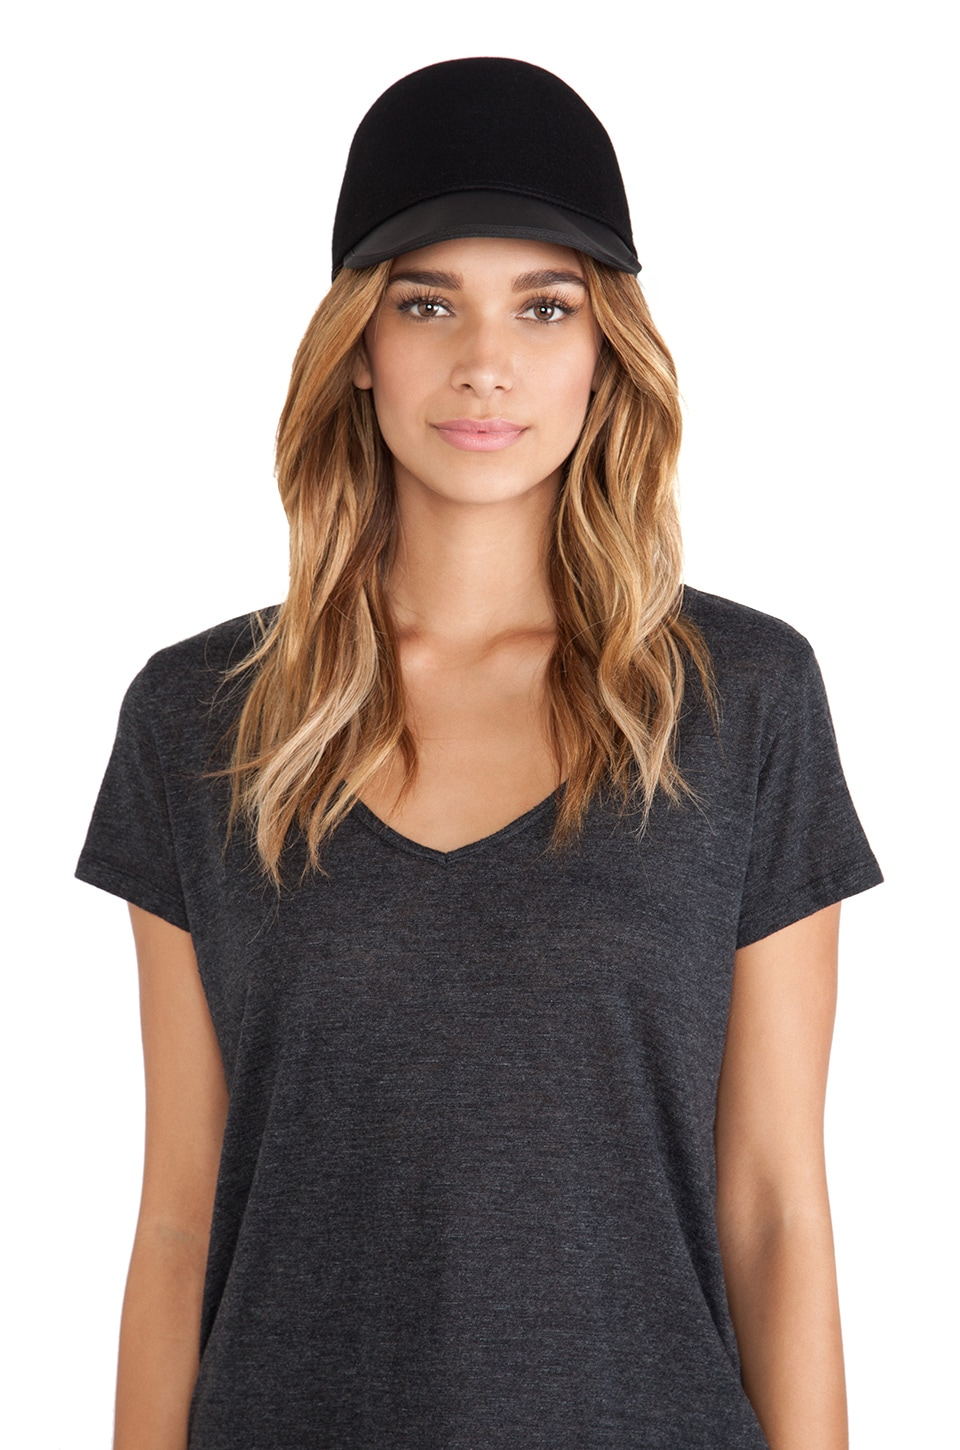 Genie by Eugenia Kim Alex Hat in Black